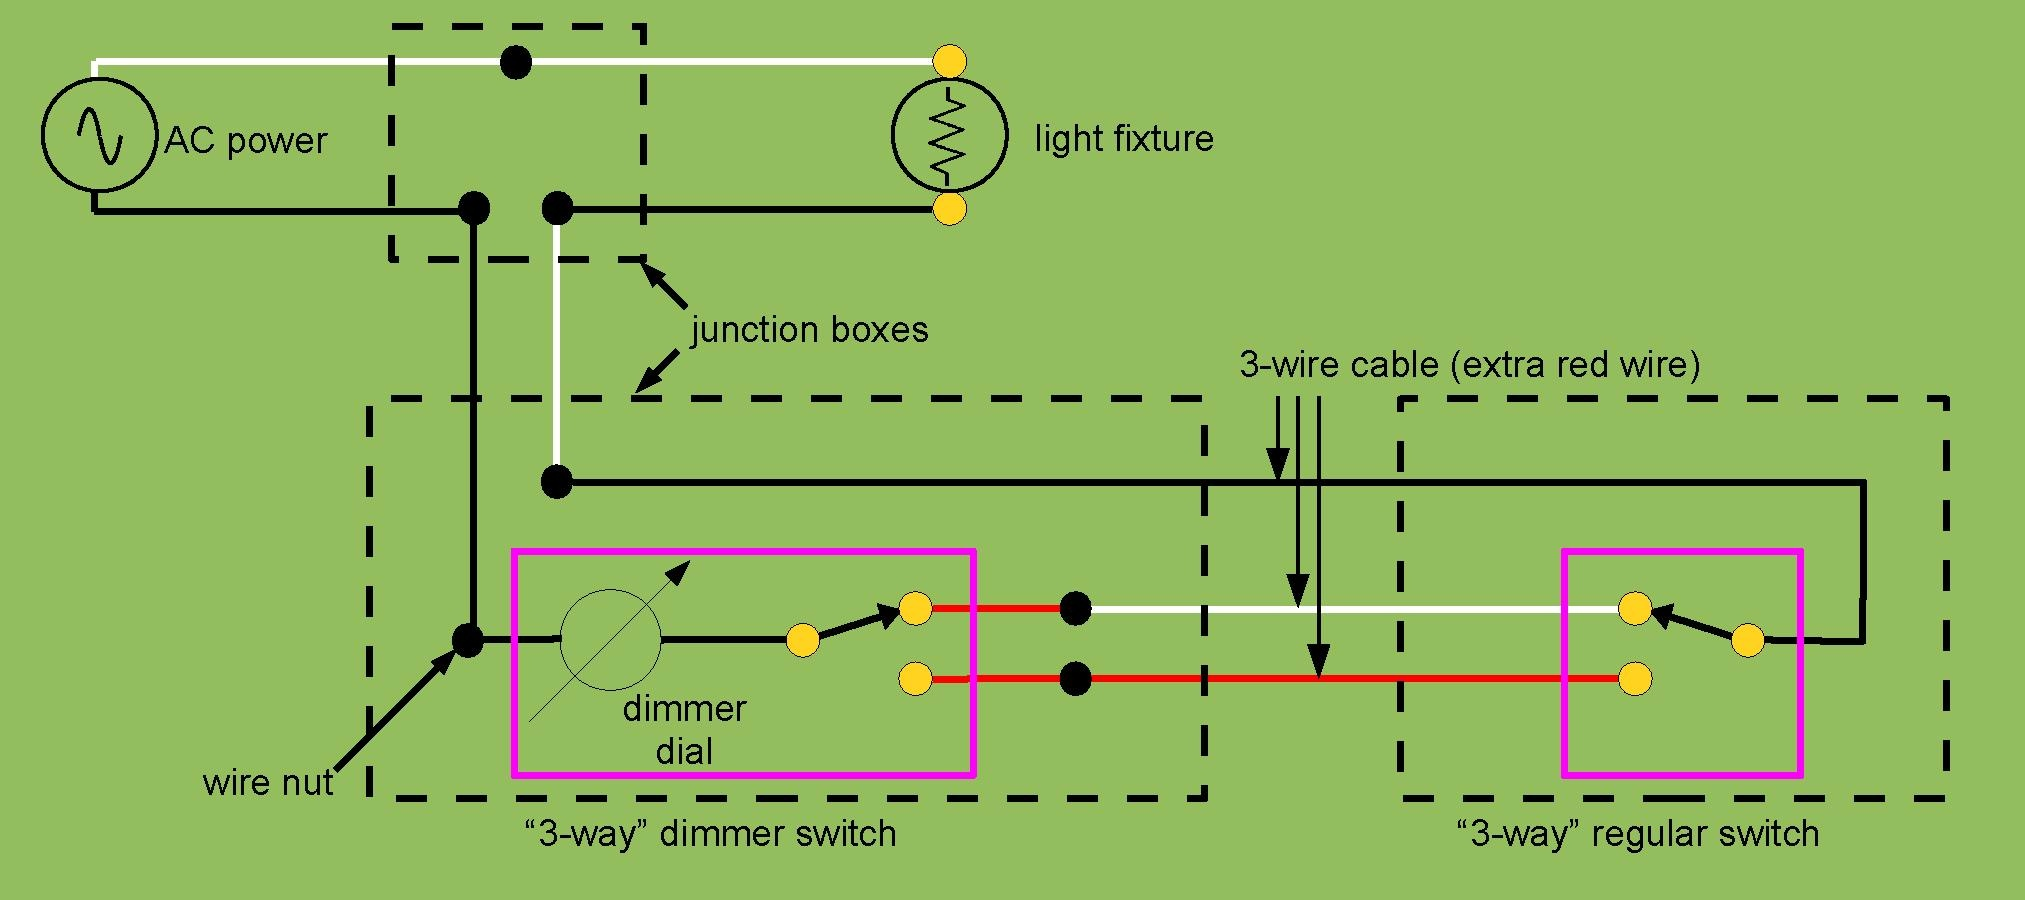 3 Way Switch Power To Fixture Wiring Diagram File Not Lossing Dallas Rangemaster Pedal Dimmer Pdf Wikimedia Commons Rh Org Light